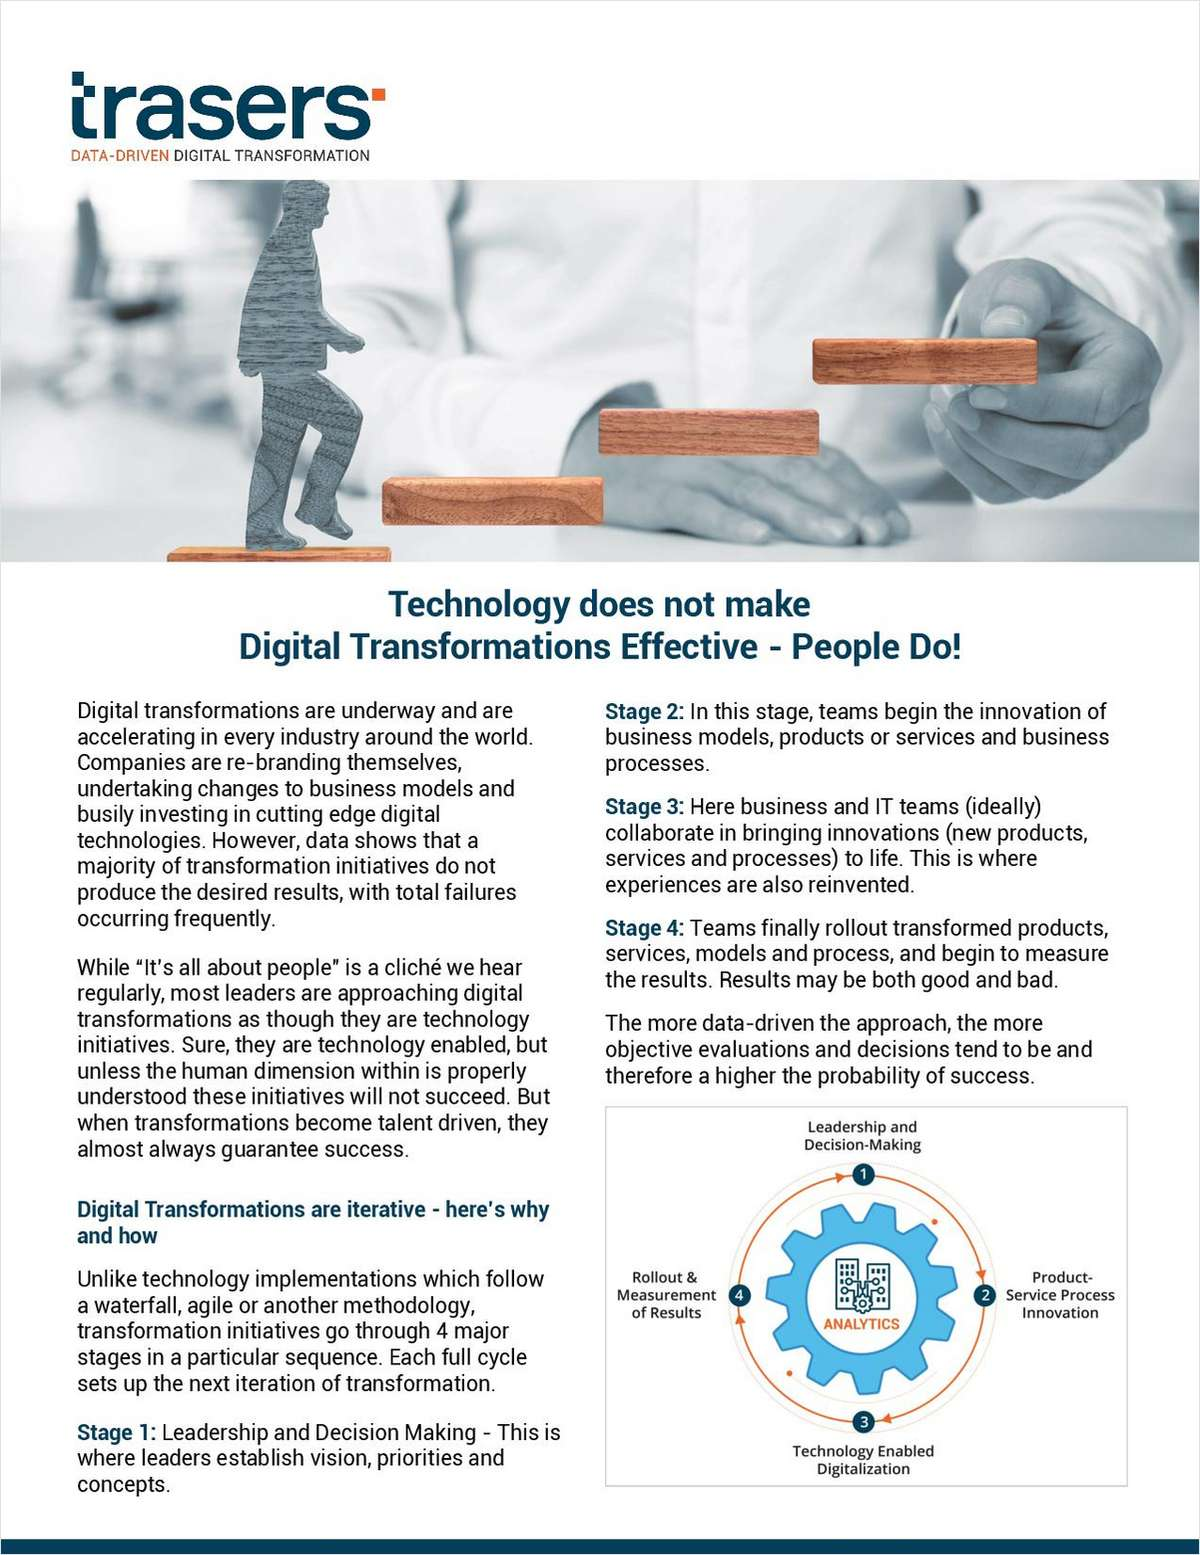 Technology does not make Digital Transformations Effective - People Do!